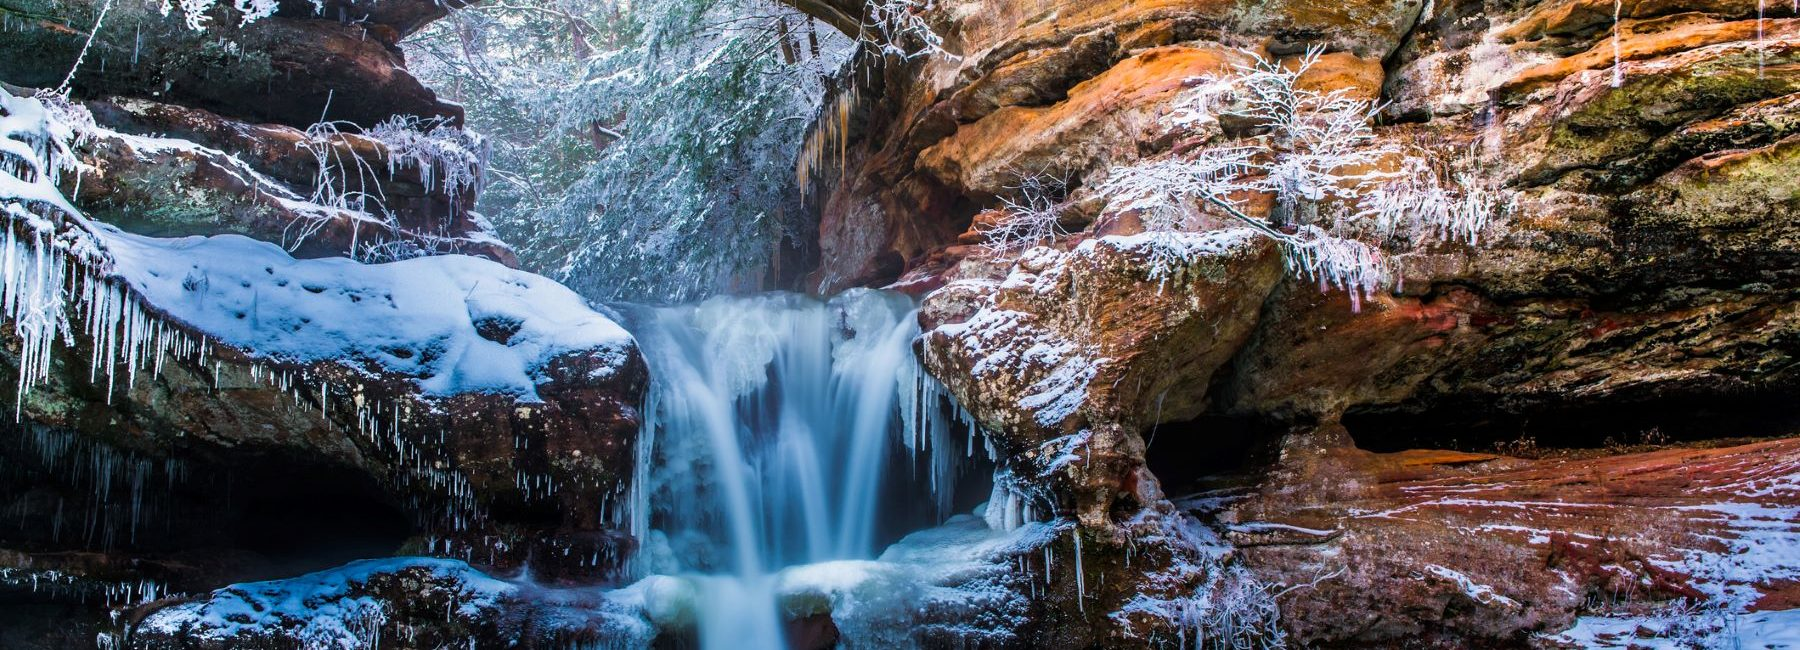 5 Of The Most Magnificent Midwest Winter Getaways Select Registry